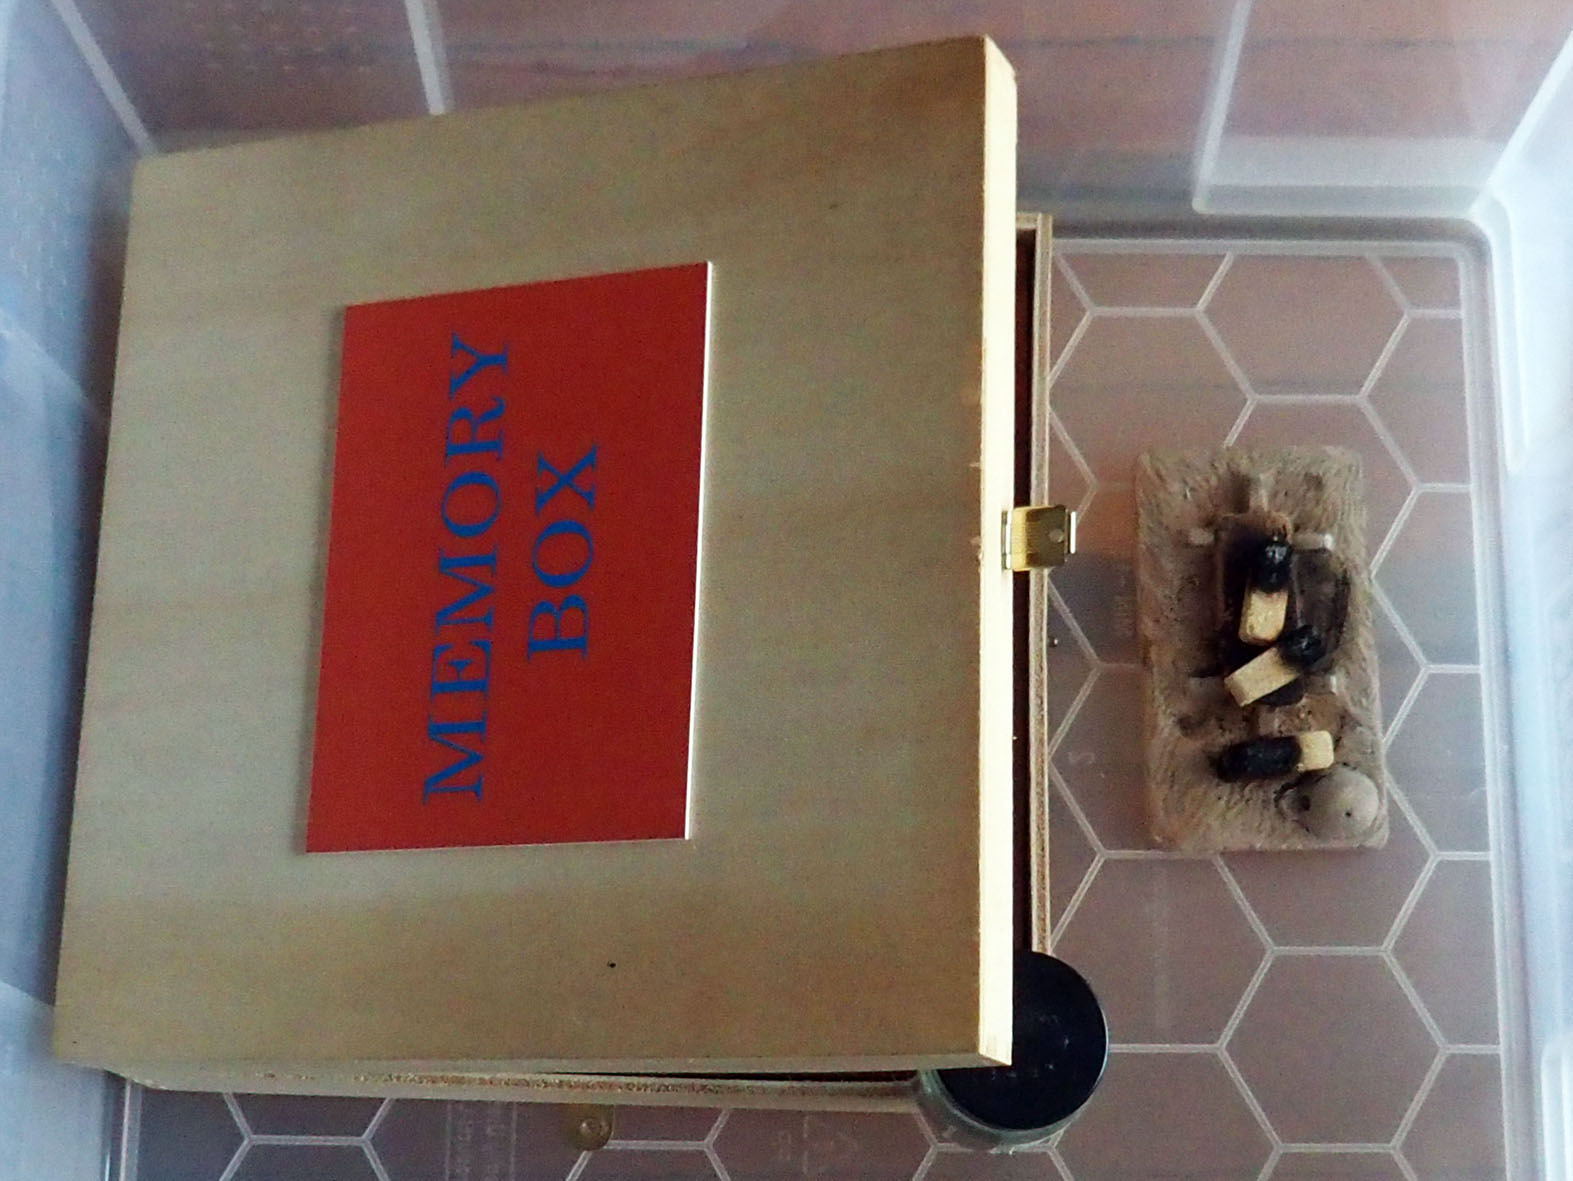 Image 8 - Memory Box - Smoking the box with piñon incense